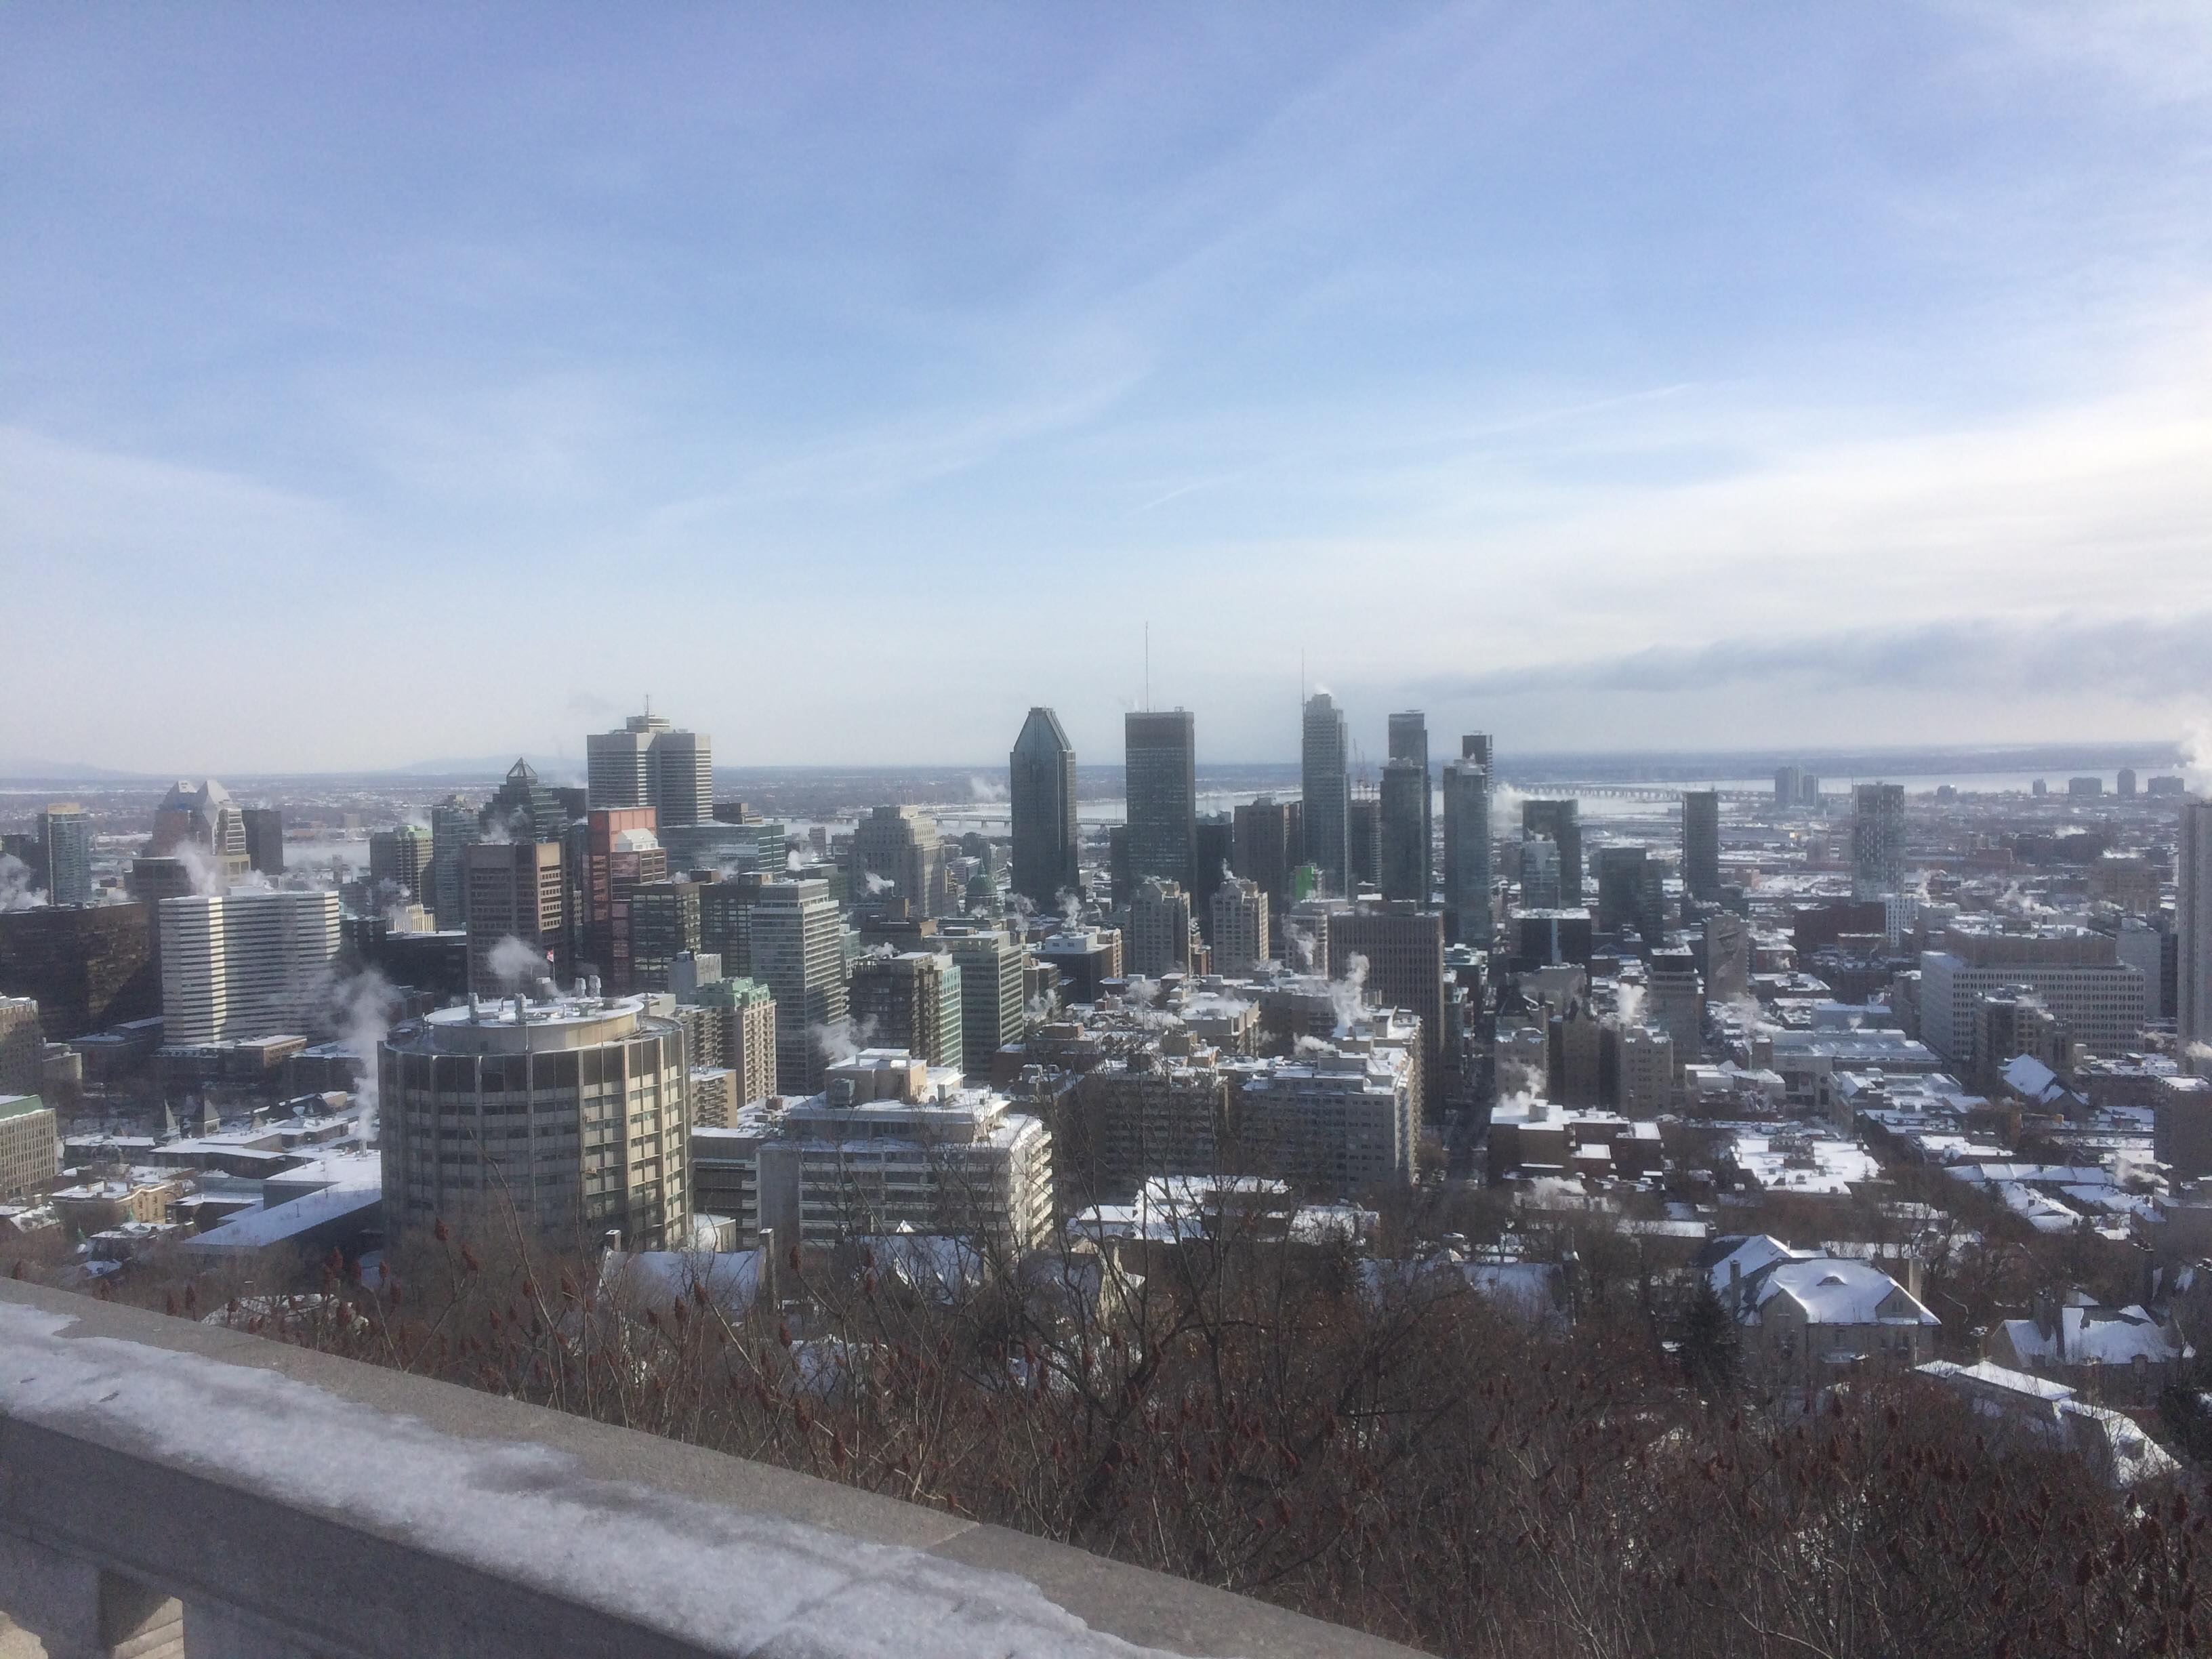 Mount Royal, Montréal